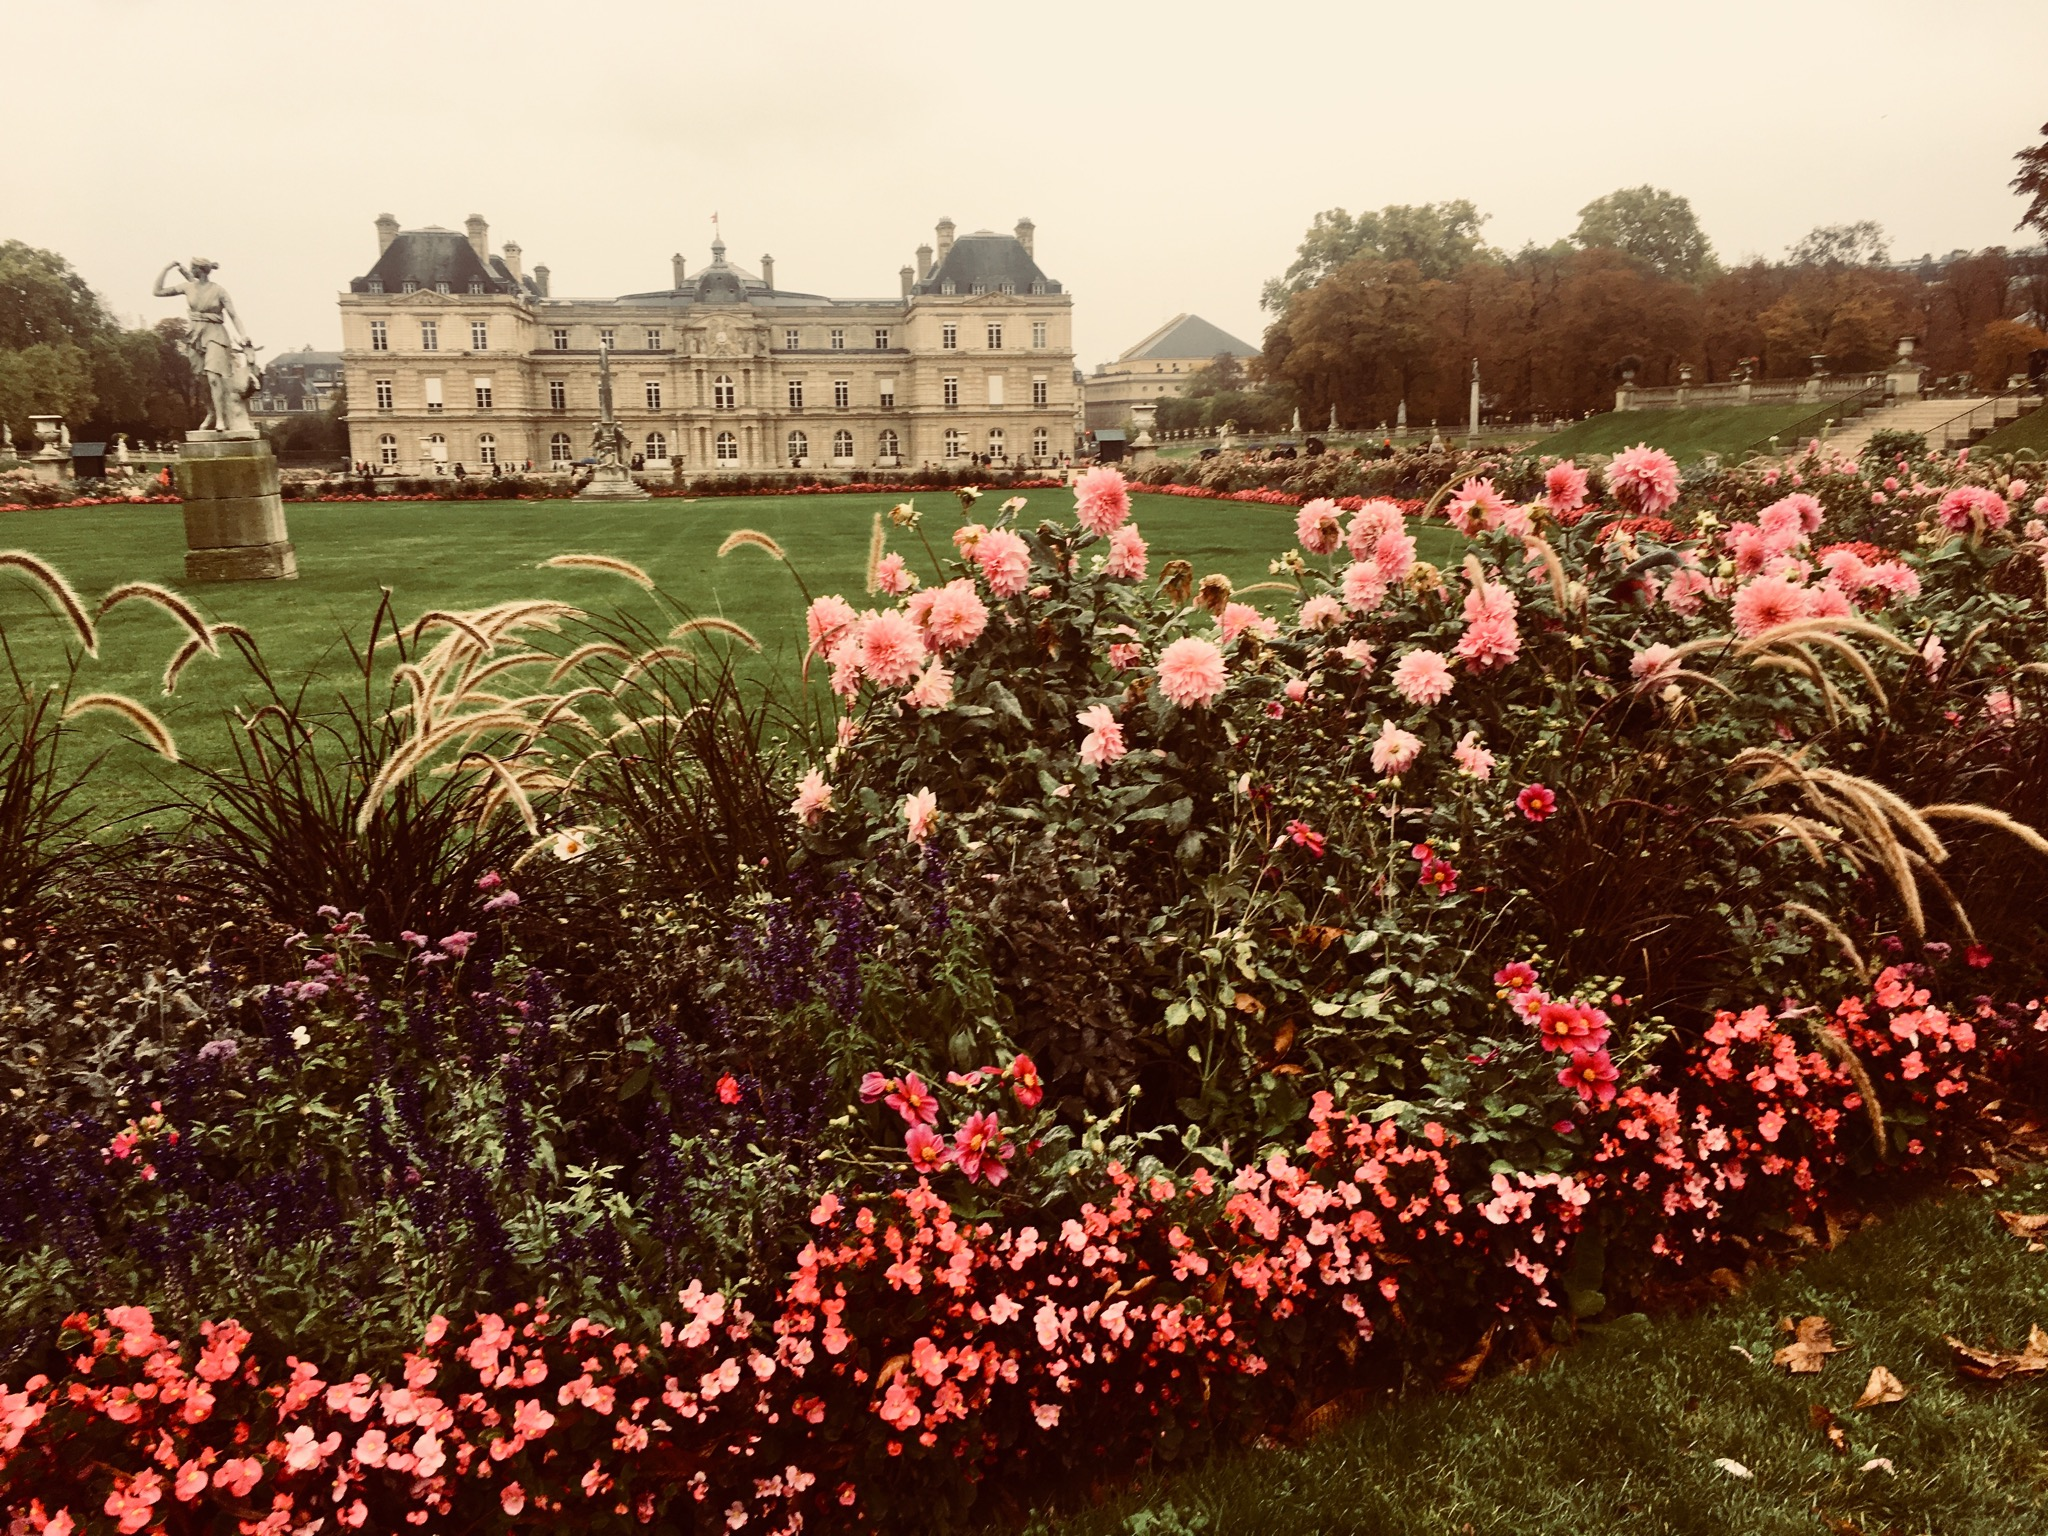 There are flowers in the foreground. There is a statue and building in the distance.